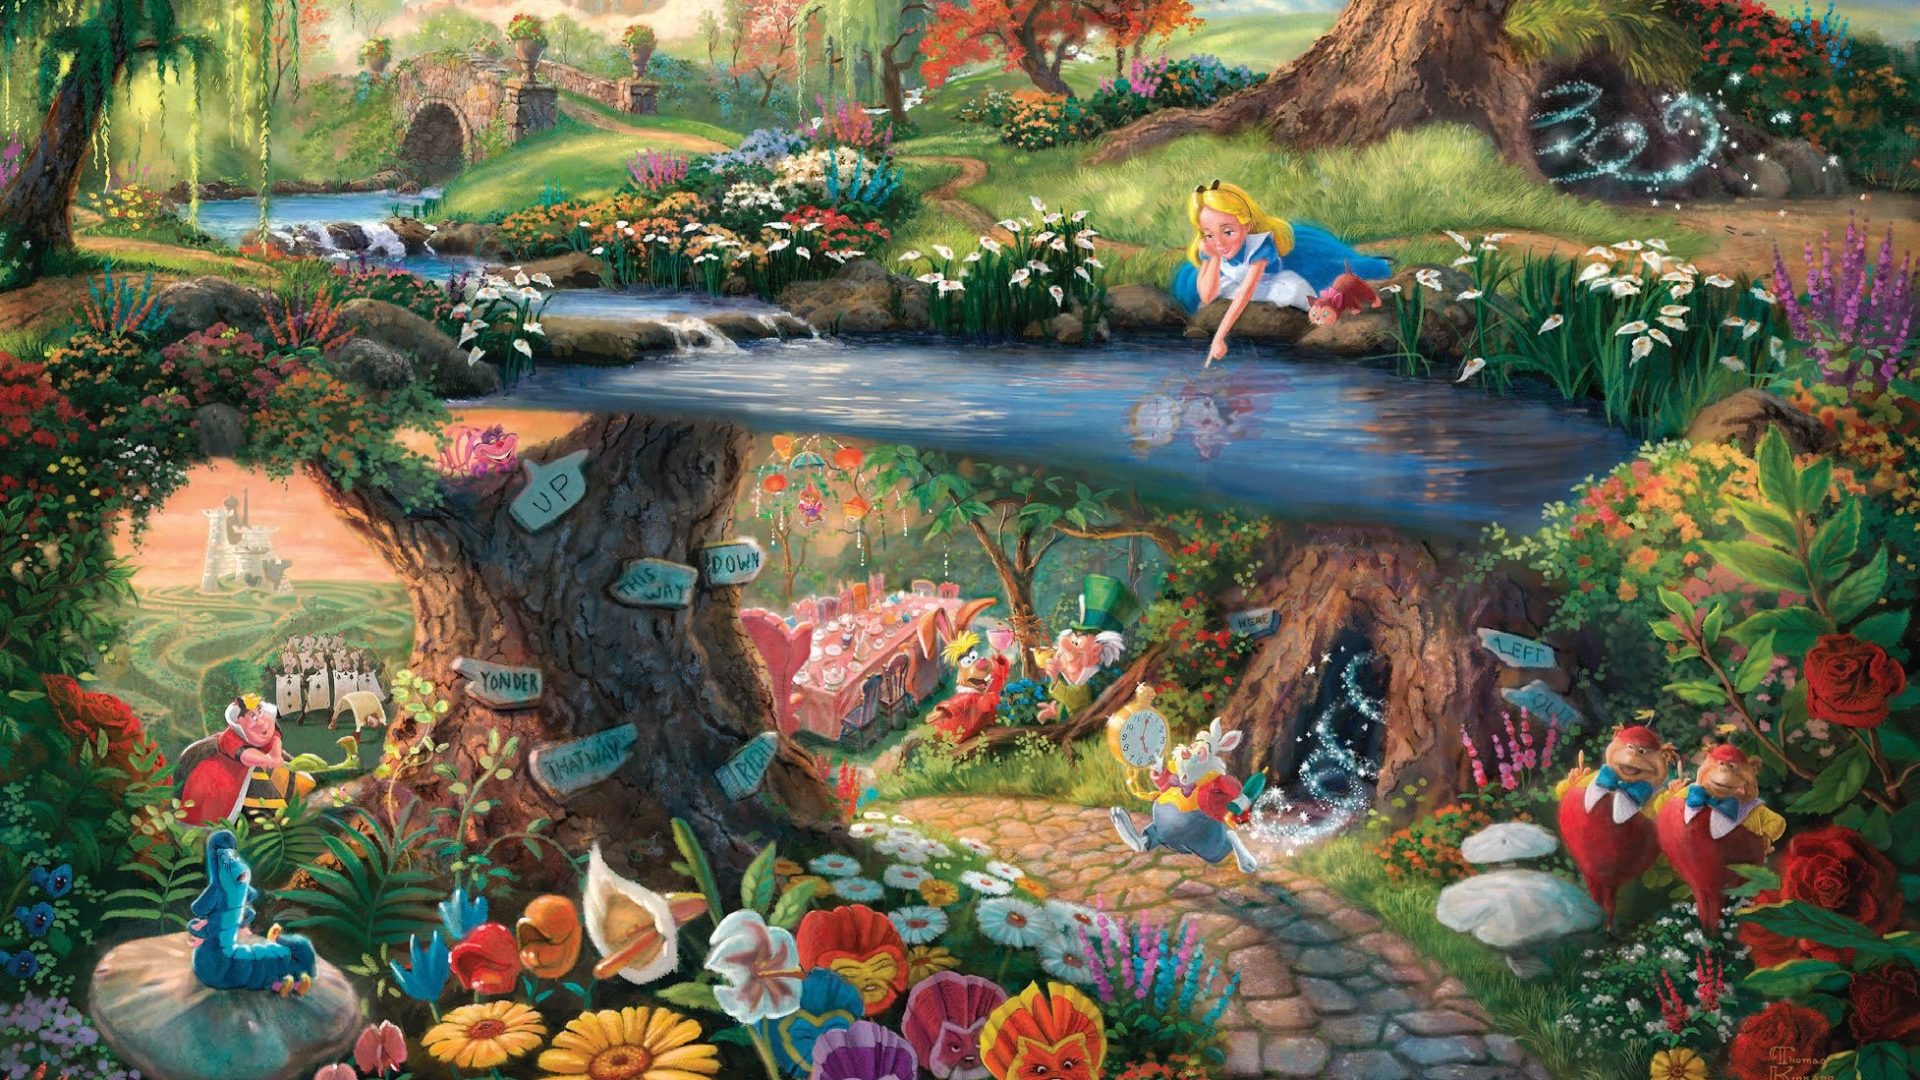 3d Wallpaper Full Hd For Pc Hd Hintergrundbilder Disney Alice Thomas Kinkade Malerei